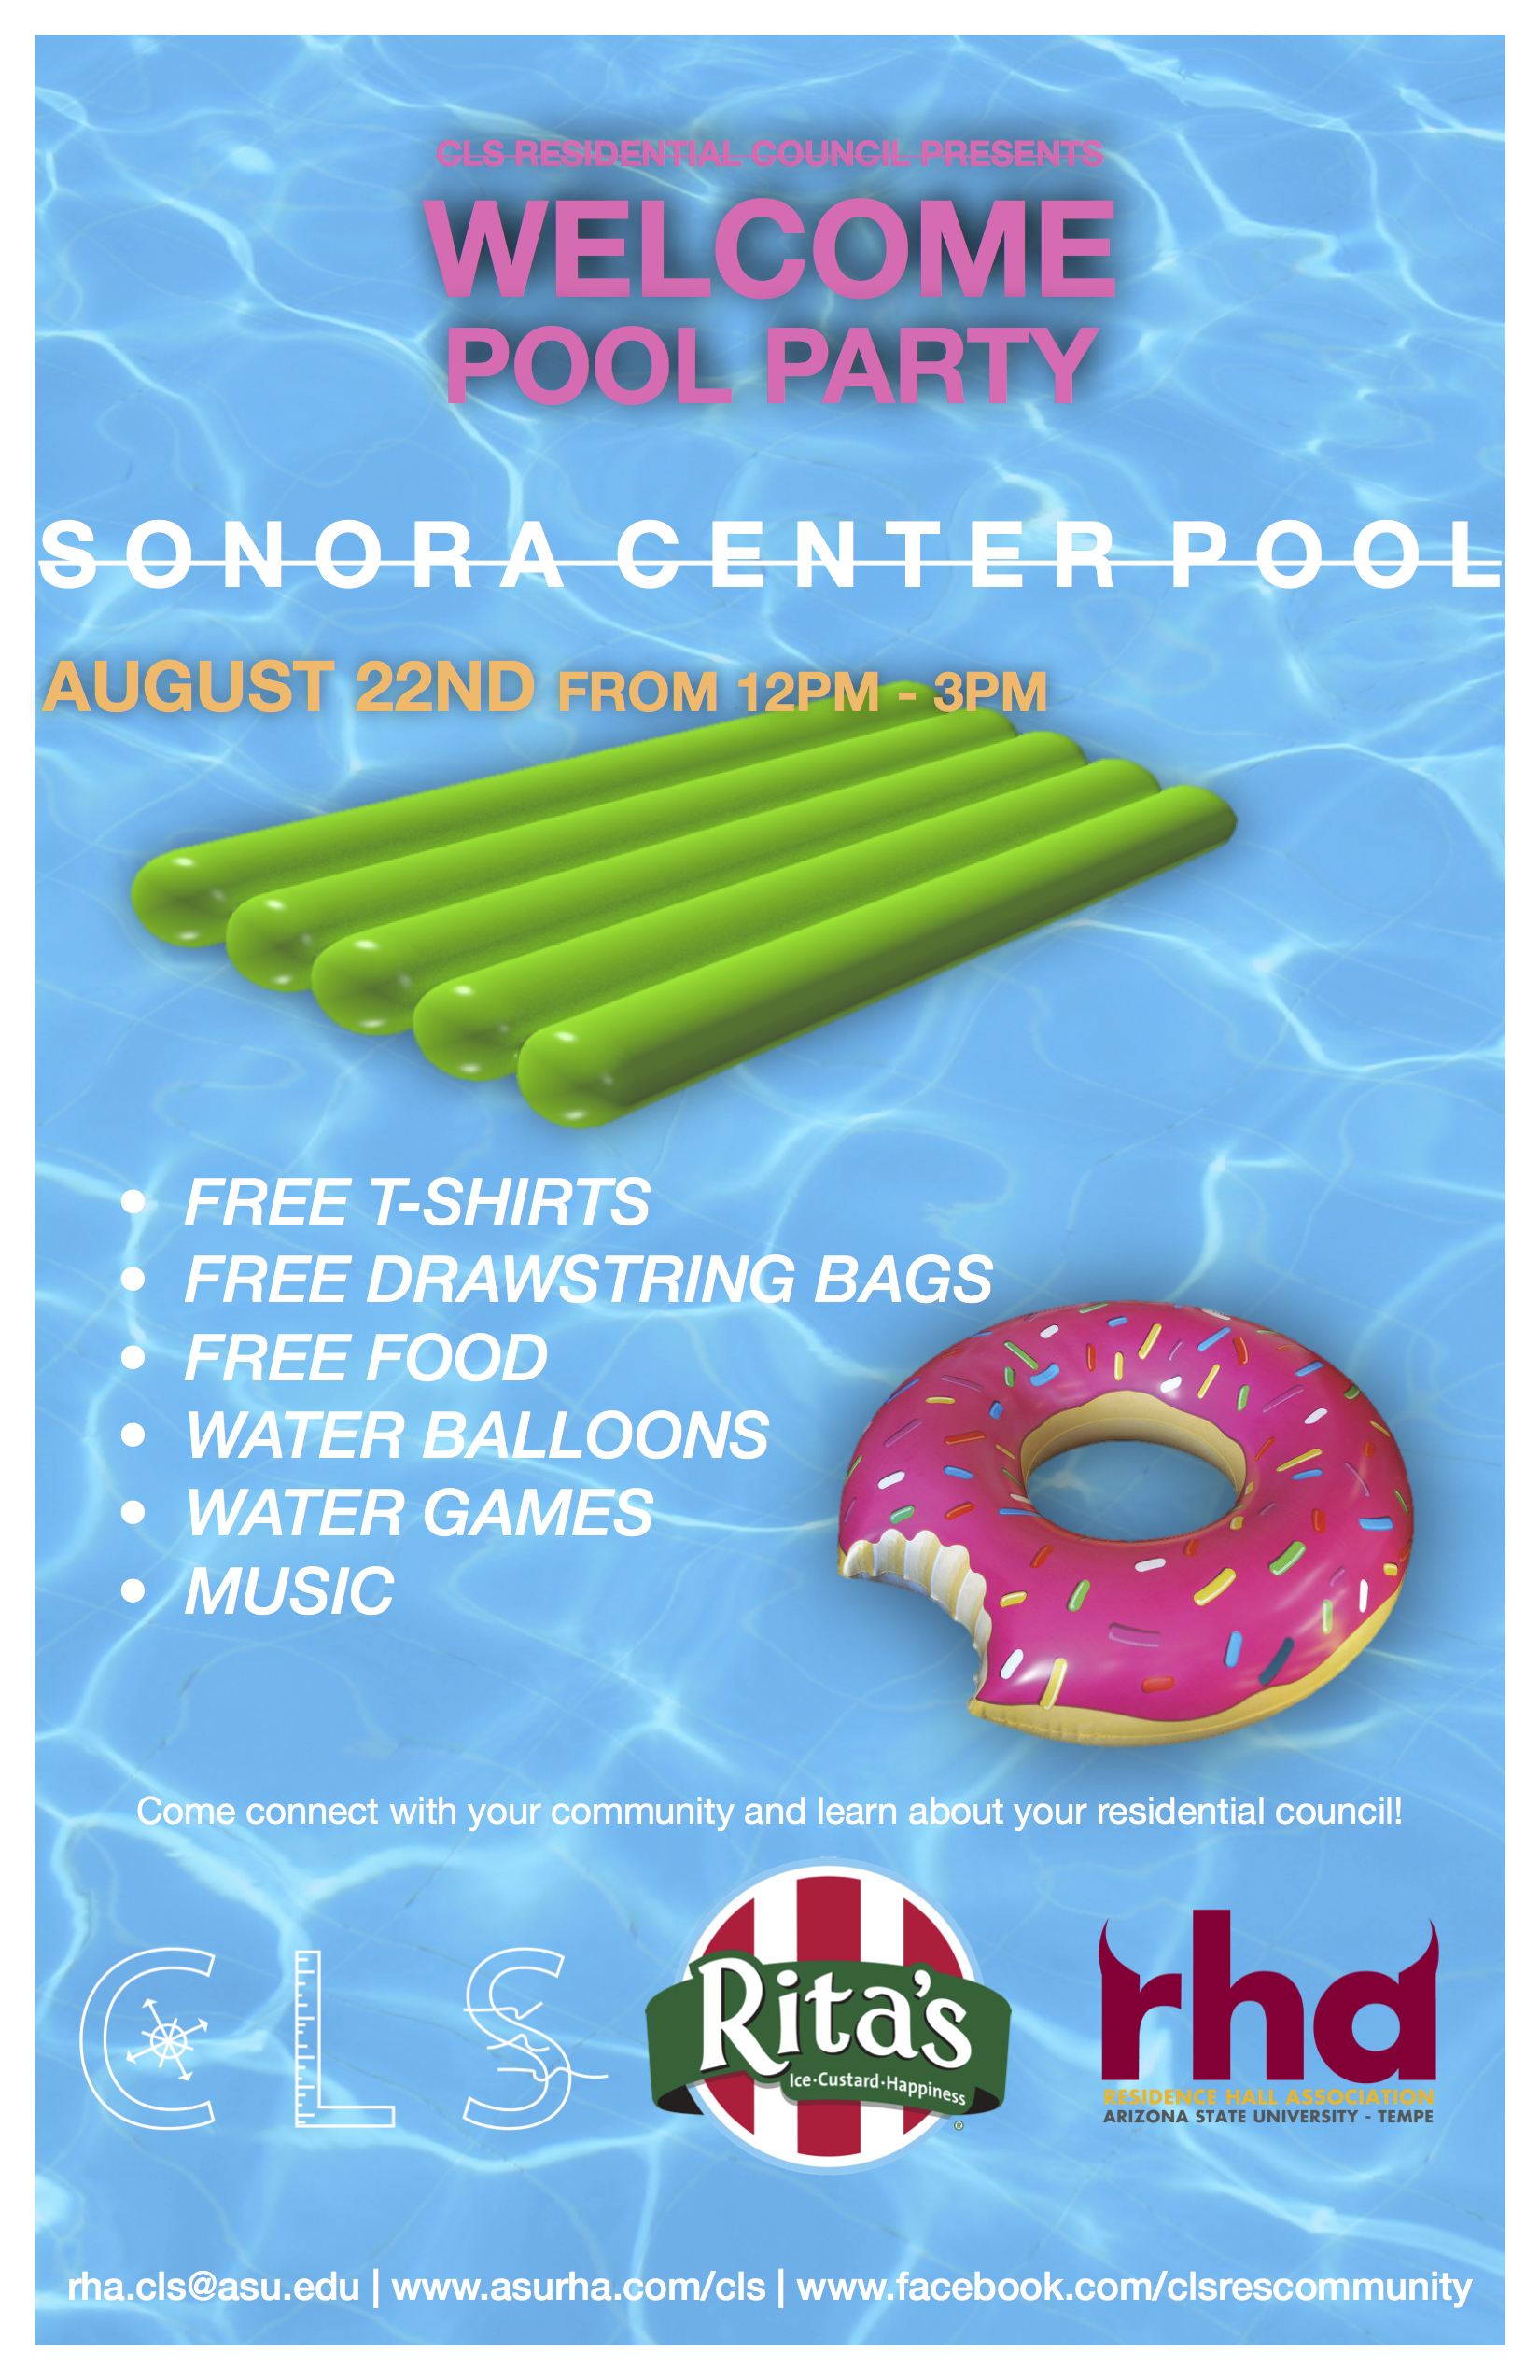 Welcome Pool Party Flyer.jpg